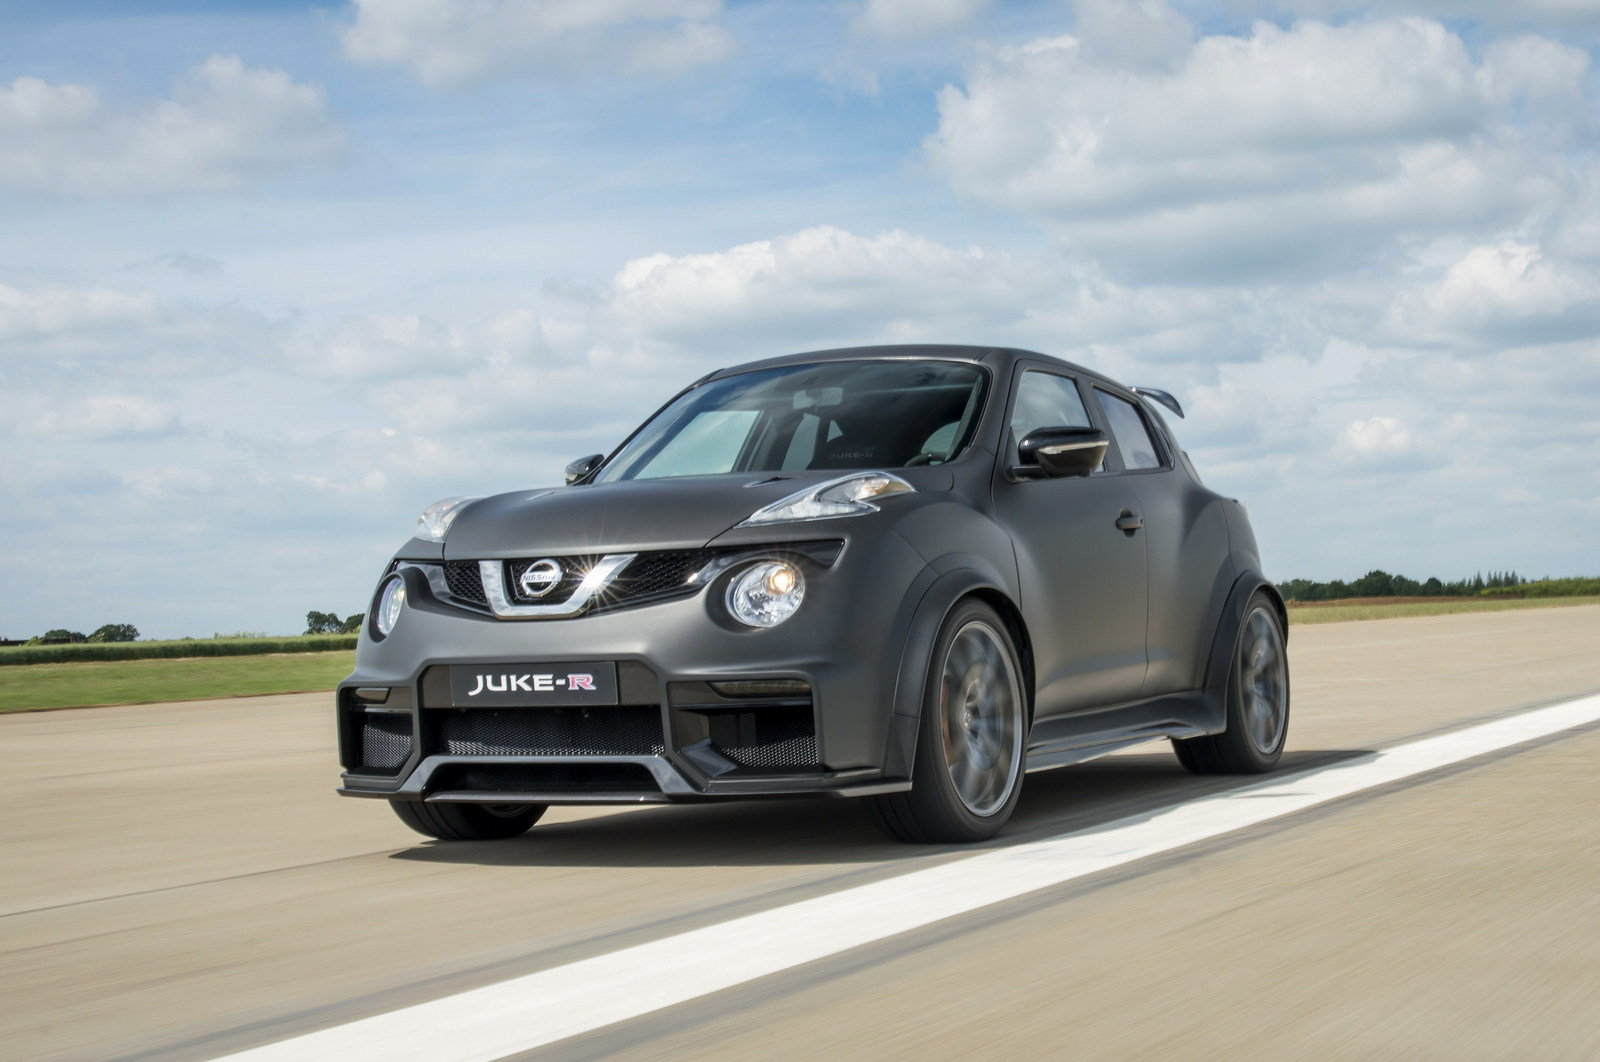 2016 nissan juke r 2 0 concept picture 635014 car review top speed. Black Bedroom Furniture Sets. Home Design Ideas